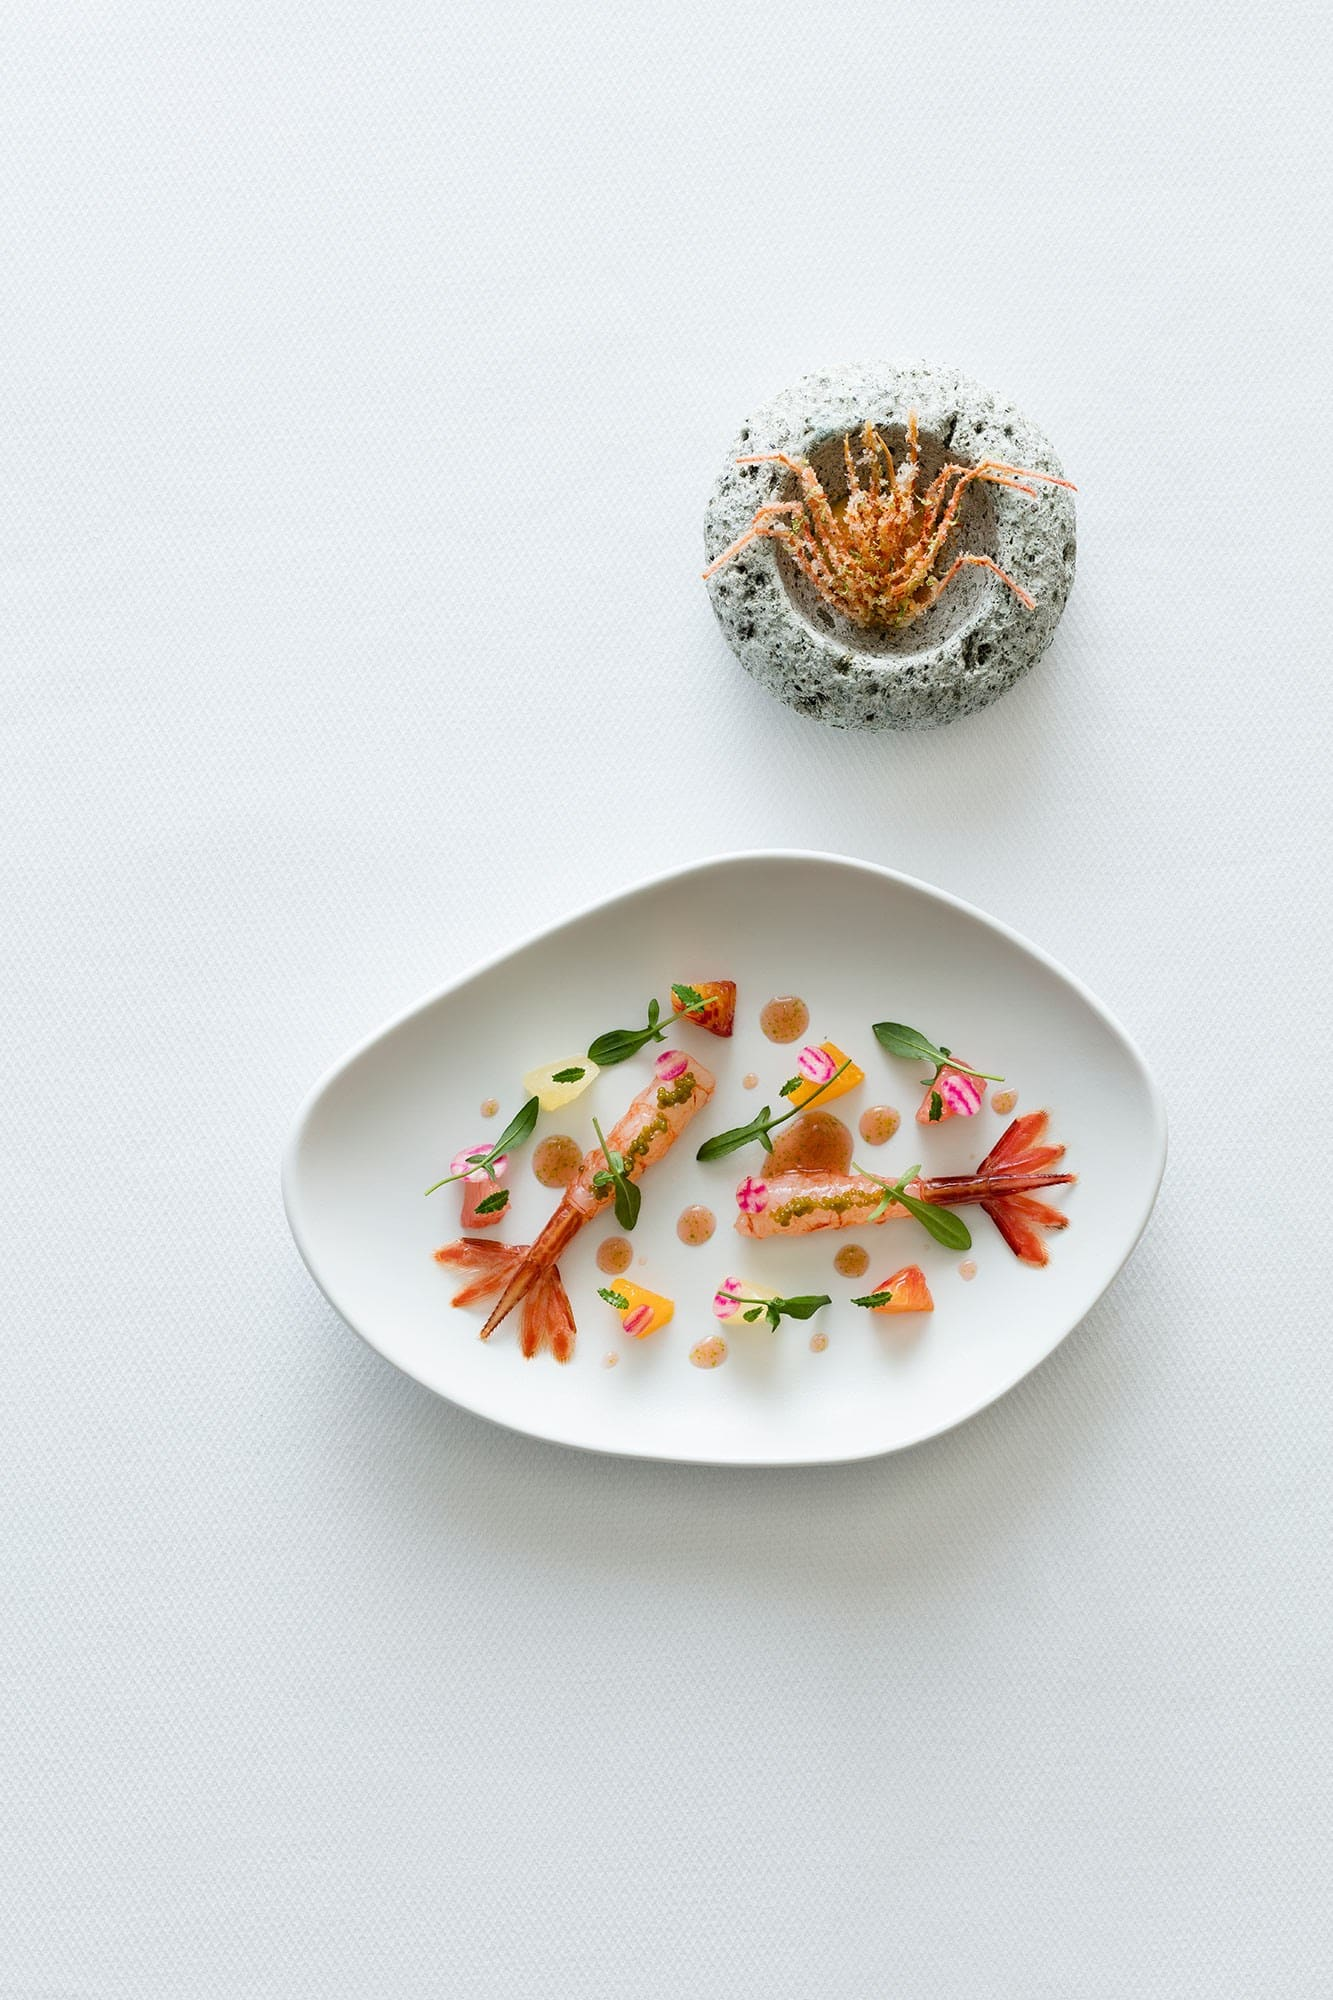 Richard Ekkebus: Shimaebi prawn tail raw, marinated with citrus & beetroot, crispy fried head with calamansi emulsion